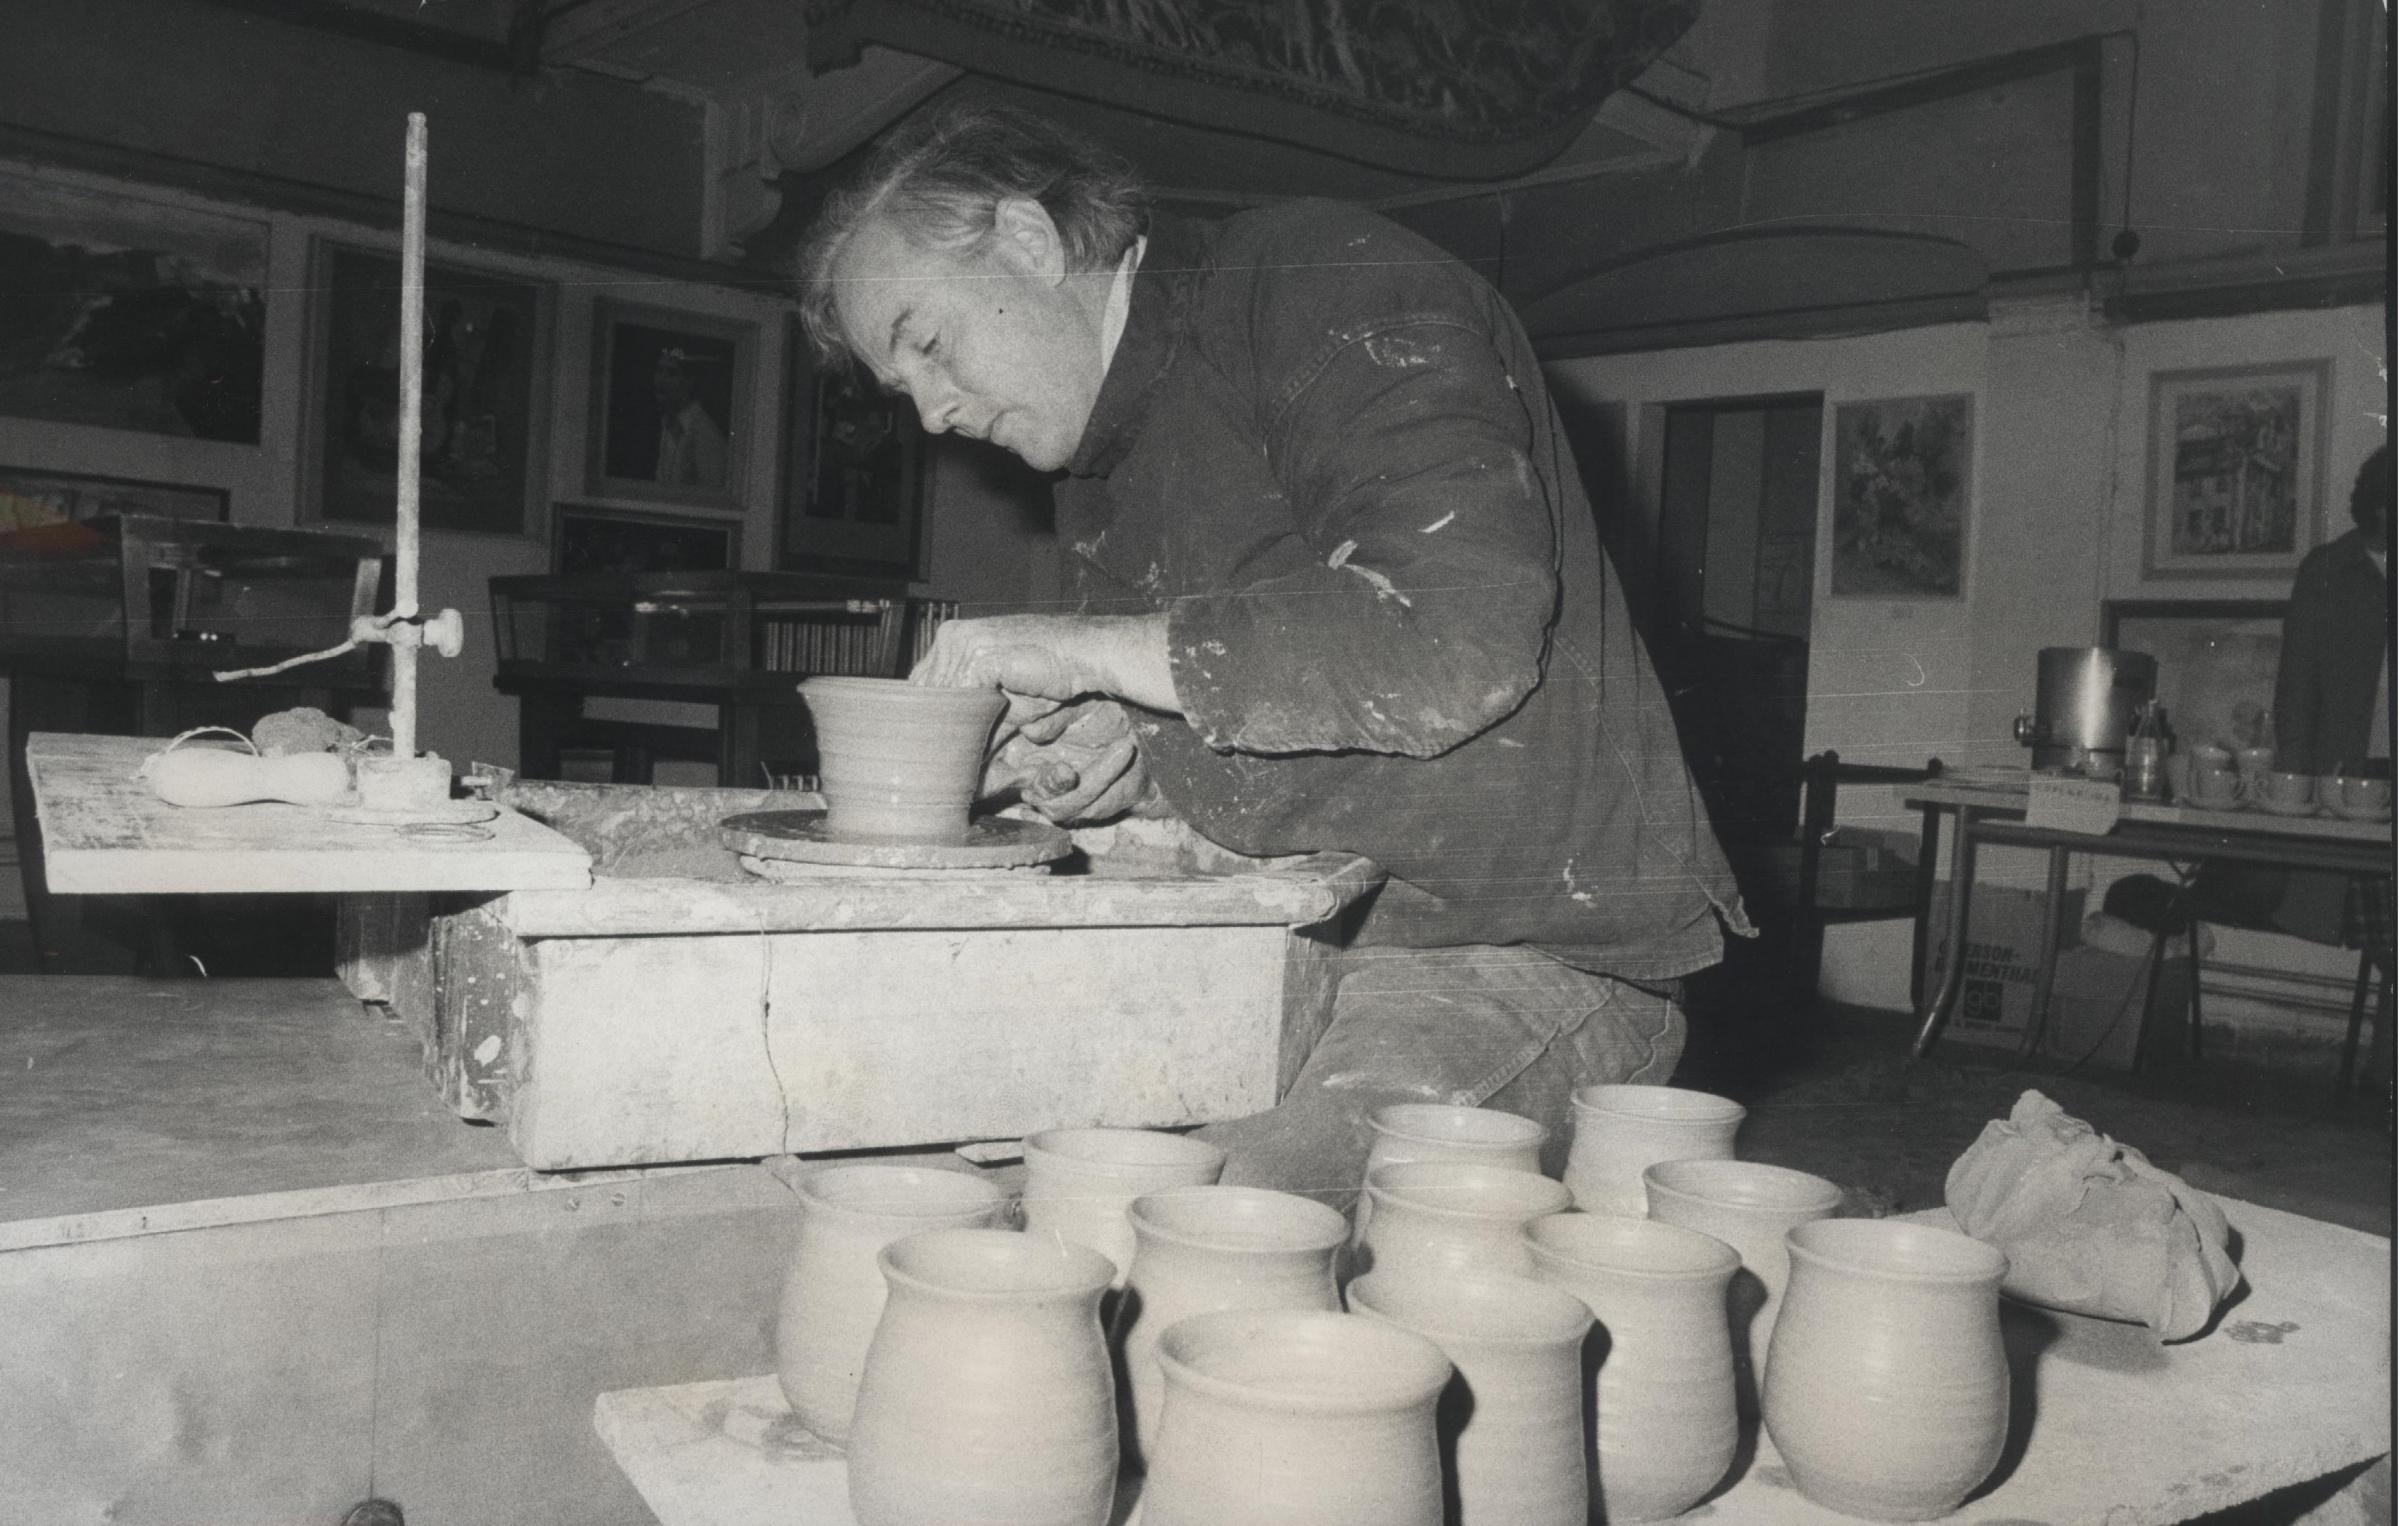 Reg Mills working at his pottery wheel.